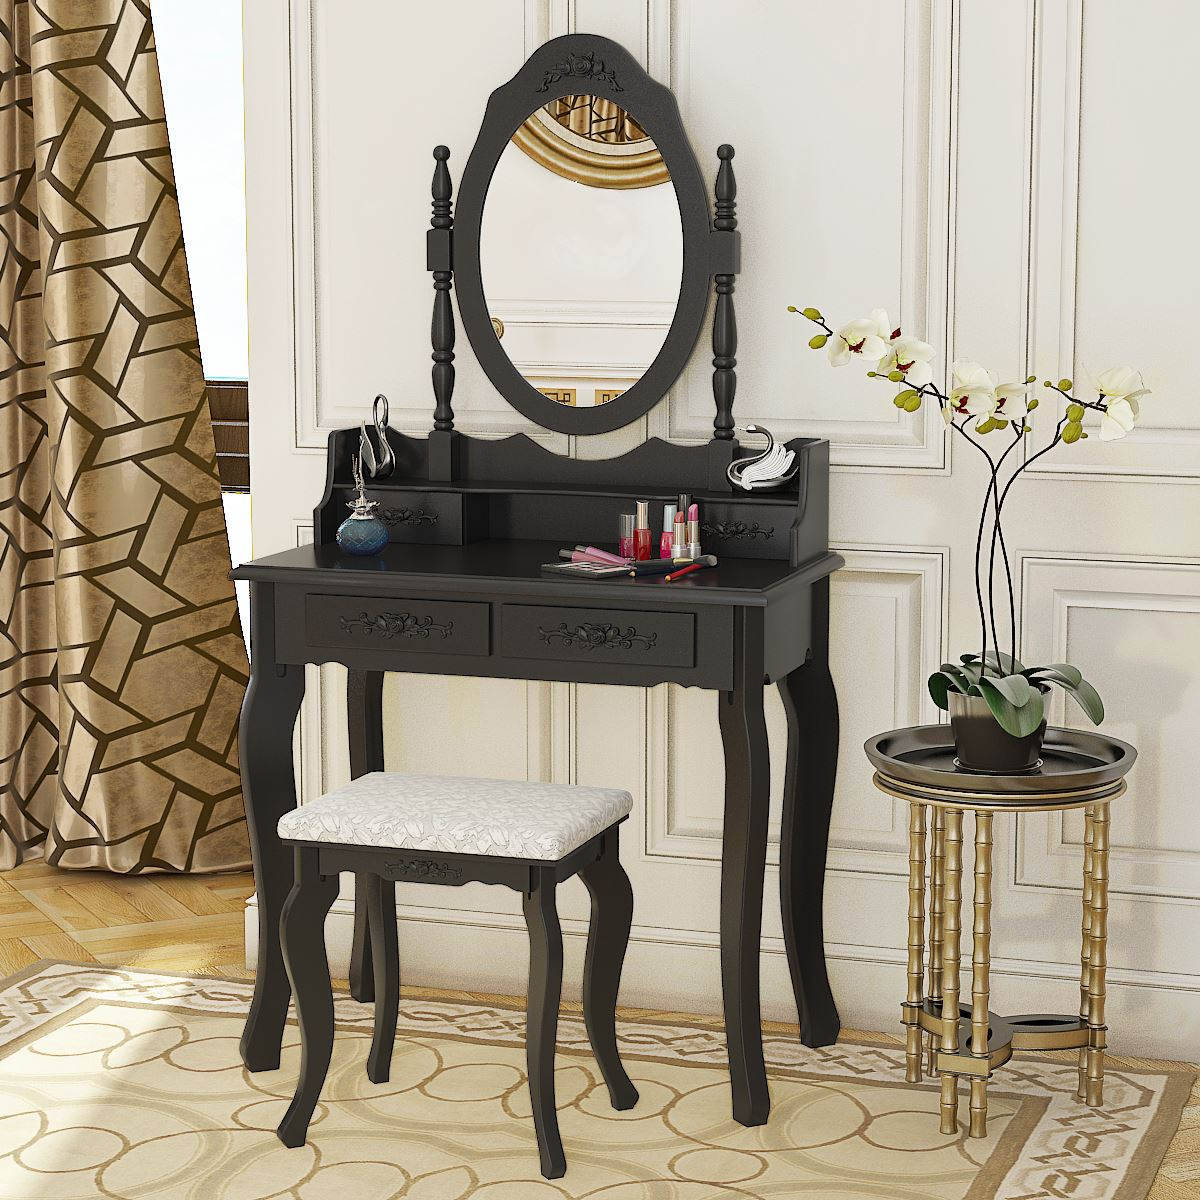 Panana 4 Drawer Vanity Table Set Dressing Table with Cushioned Stool Bedroom Makeup Table Black